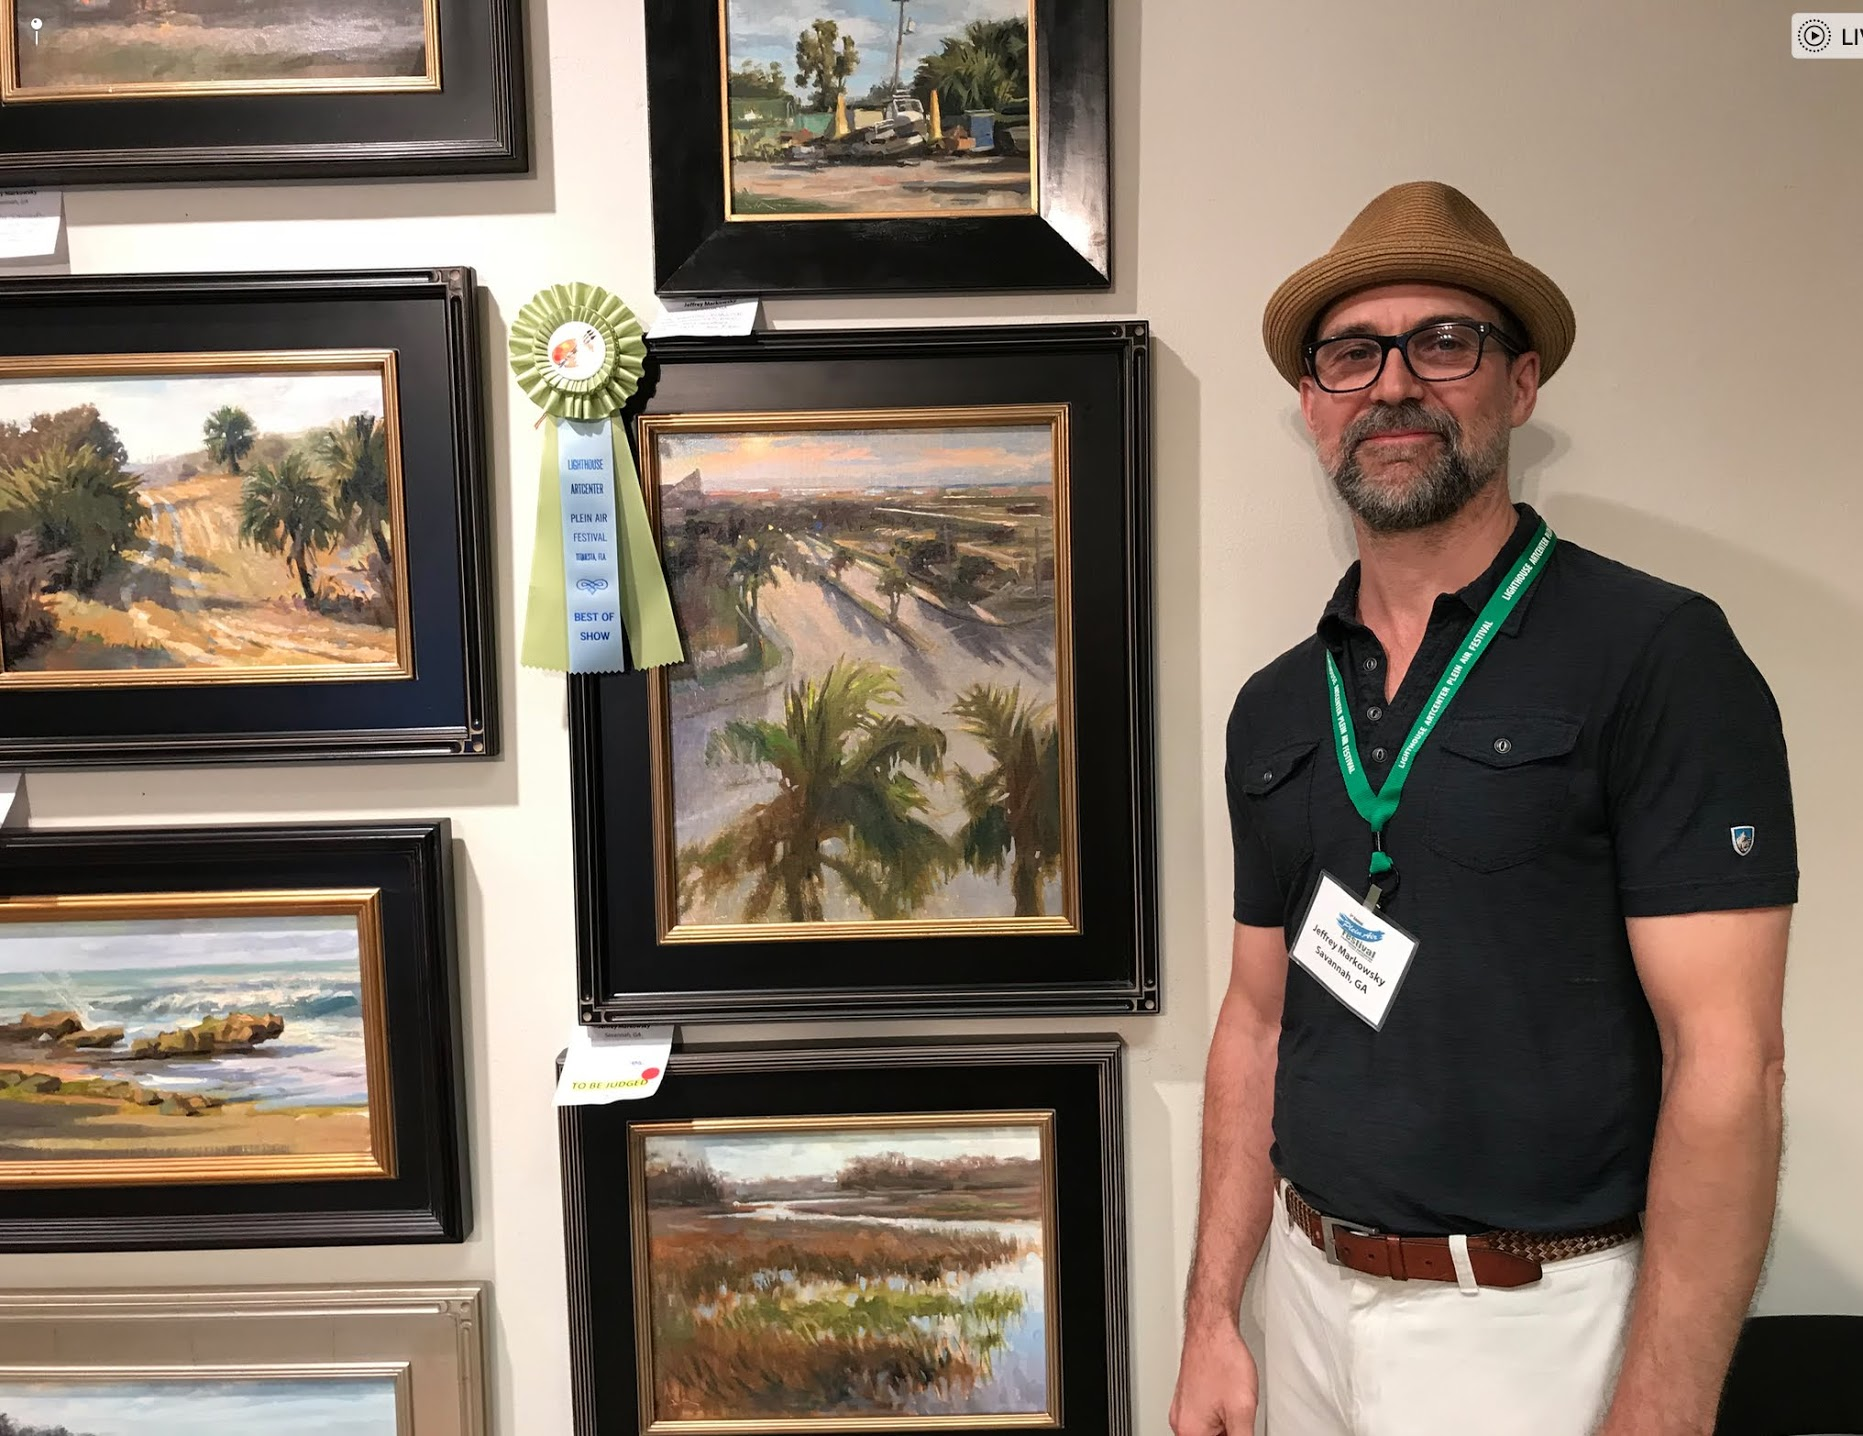 I am incredibly honored and grateful to have been awarded the Grand Prize, Best in Show for my painting 'Jupiter Rising' at the 5th Annual Jupiter Lighthouse Plein Air Festival. Thank you to all the Lighthouse Art Center Organizers, the amazingly supportive and helpful volunteers, judge Nancy Tankersley and all the incredibly inspiring and hard working painters who collaboratively made this an awesome week and a memorable experience for all. Thank you! March 11th 2018